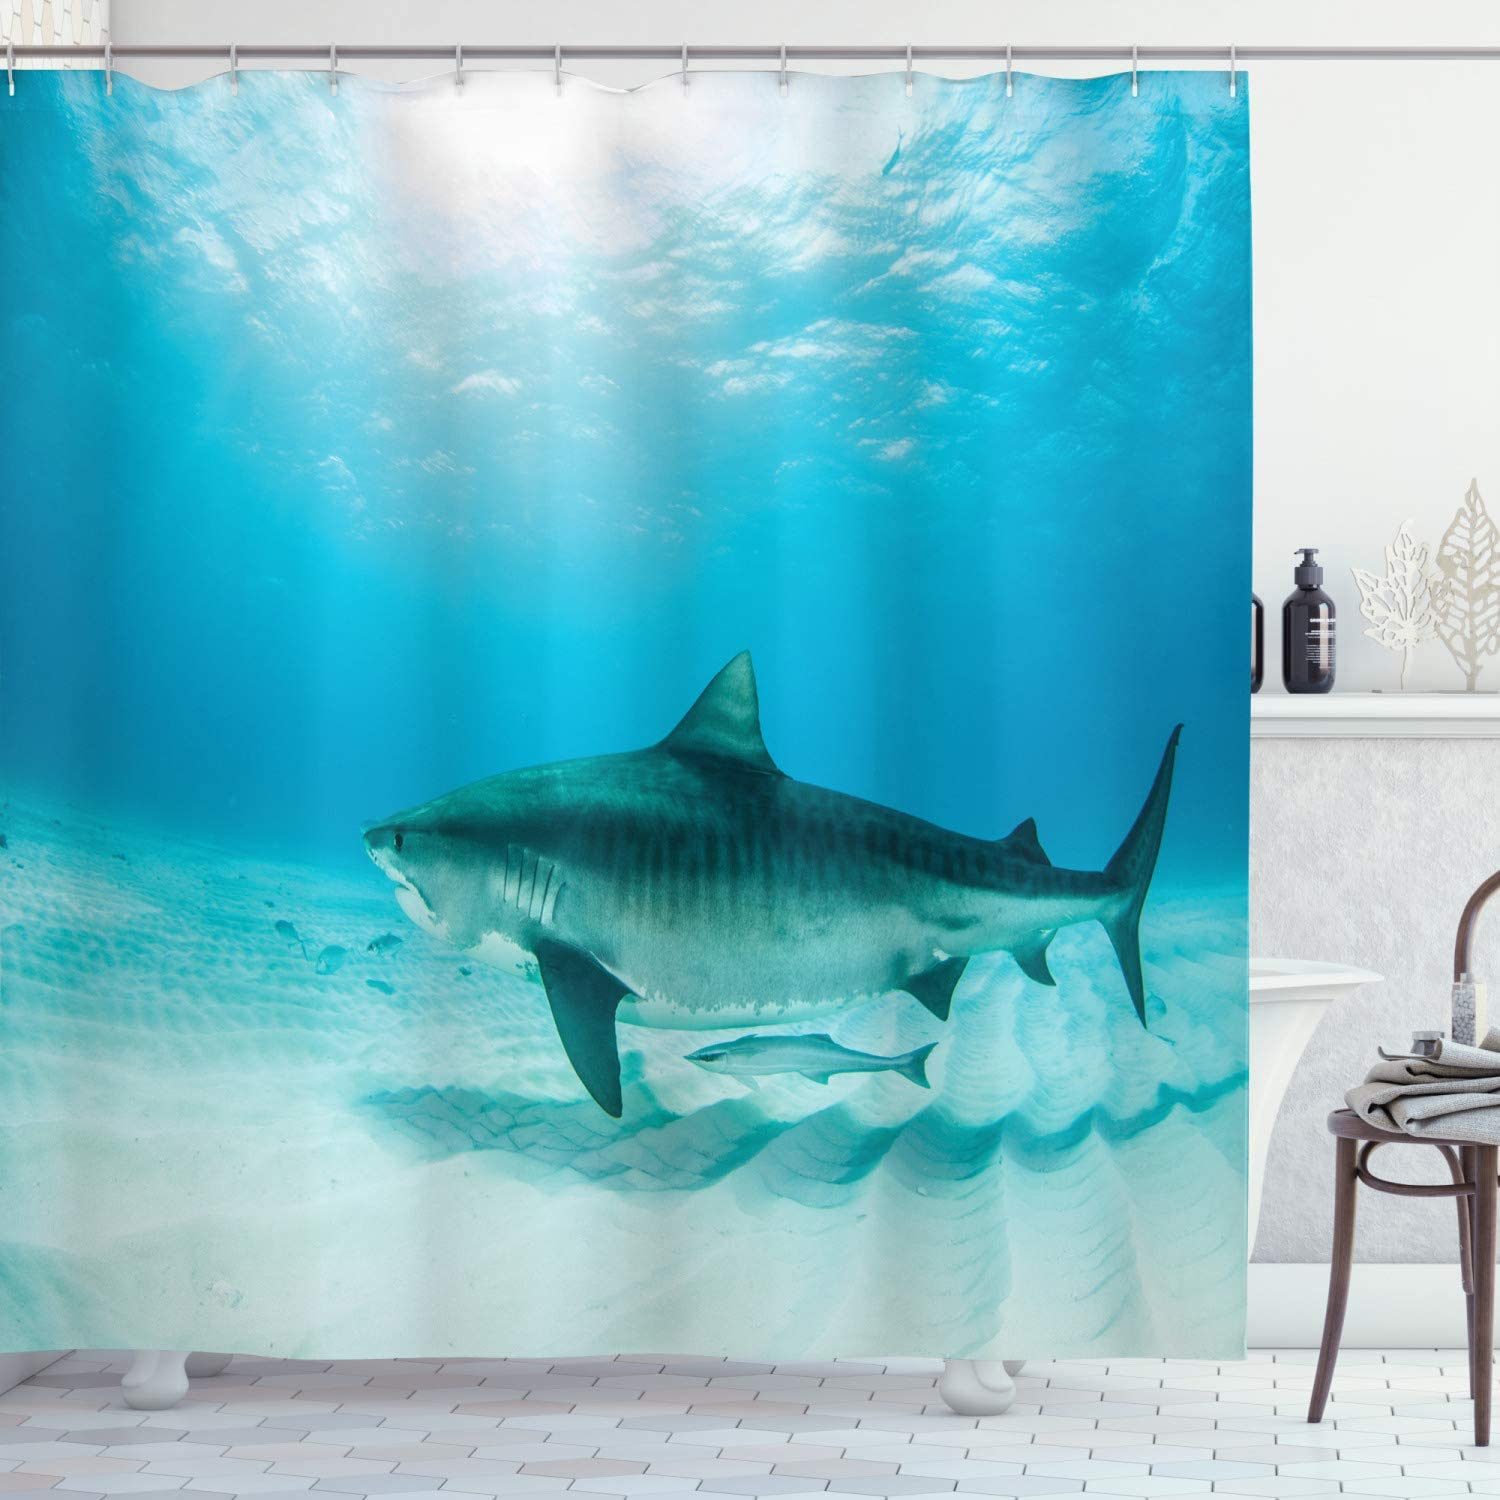 """Ambesonne Shark Shower Curtain, Tiger Shark at The Bottom of The Ocean Danger Wild Life Nature Image Print, Cloth Fabric Bathroom Decor Set with Hooks, 70"""" Long, Turquoise Yellow"""